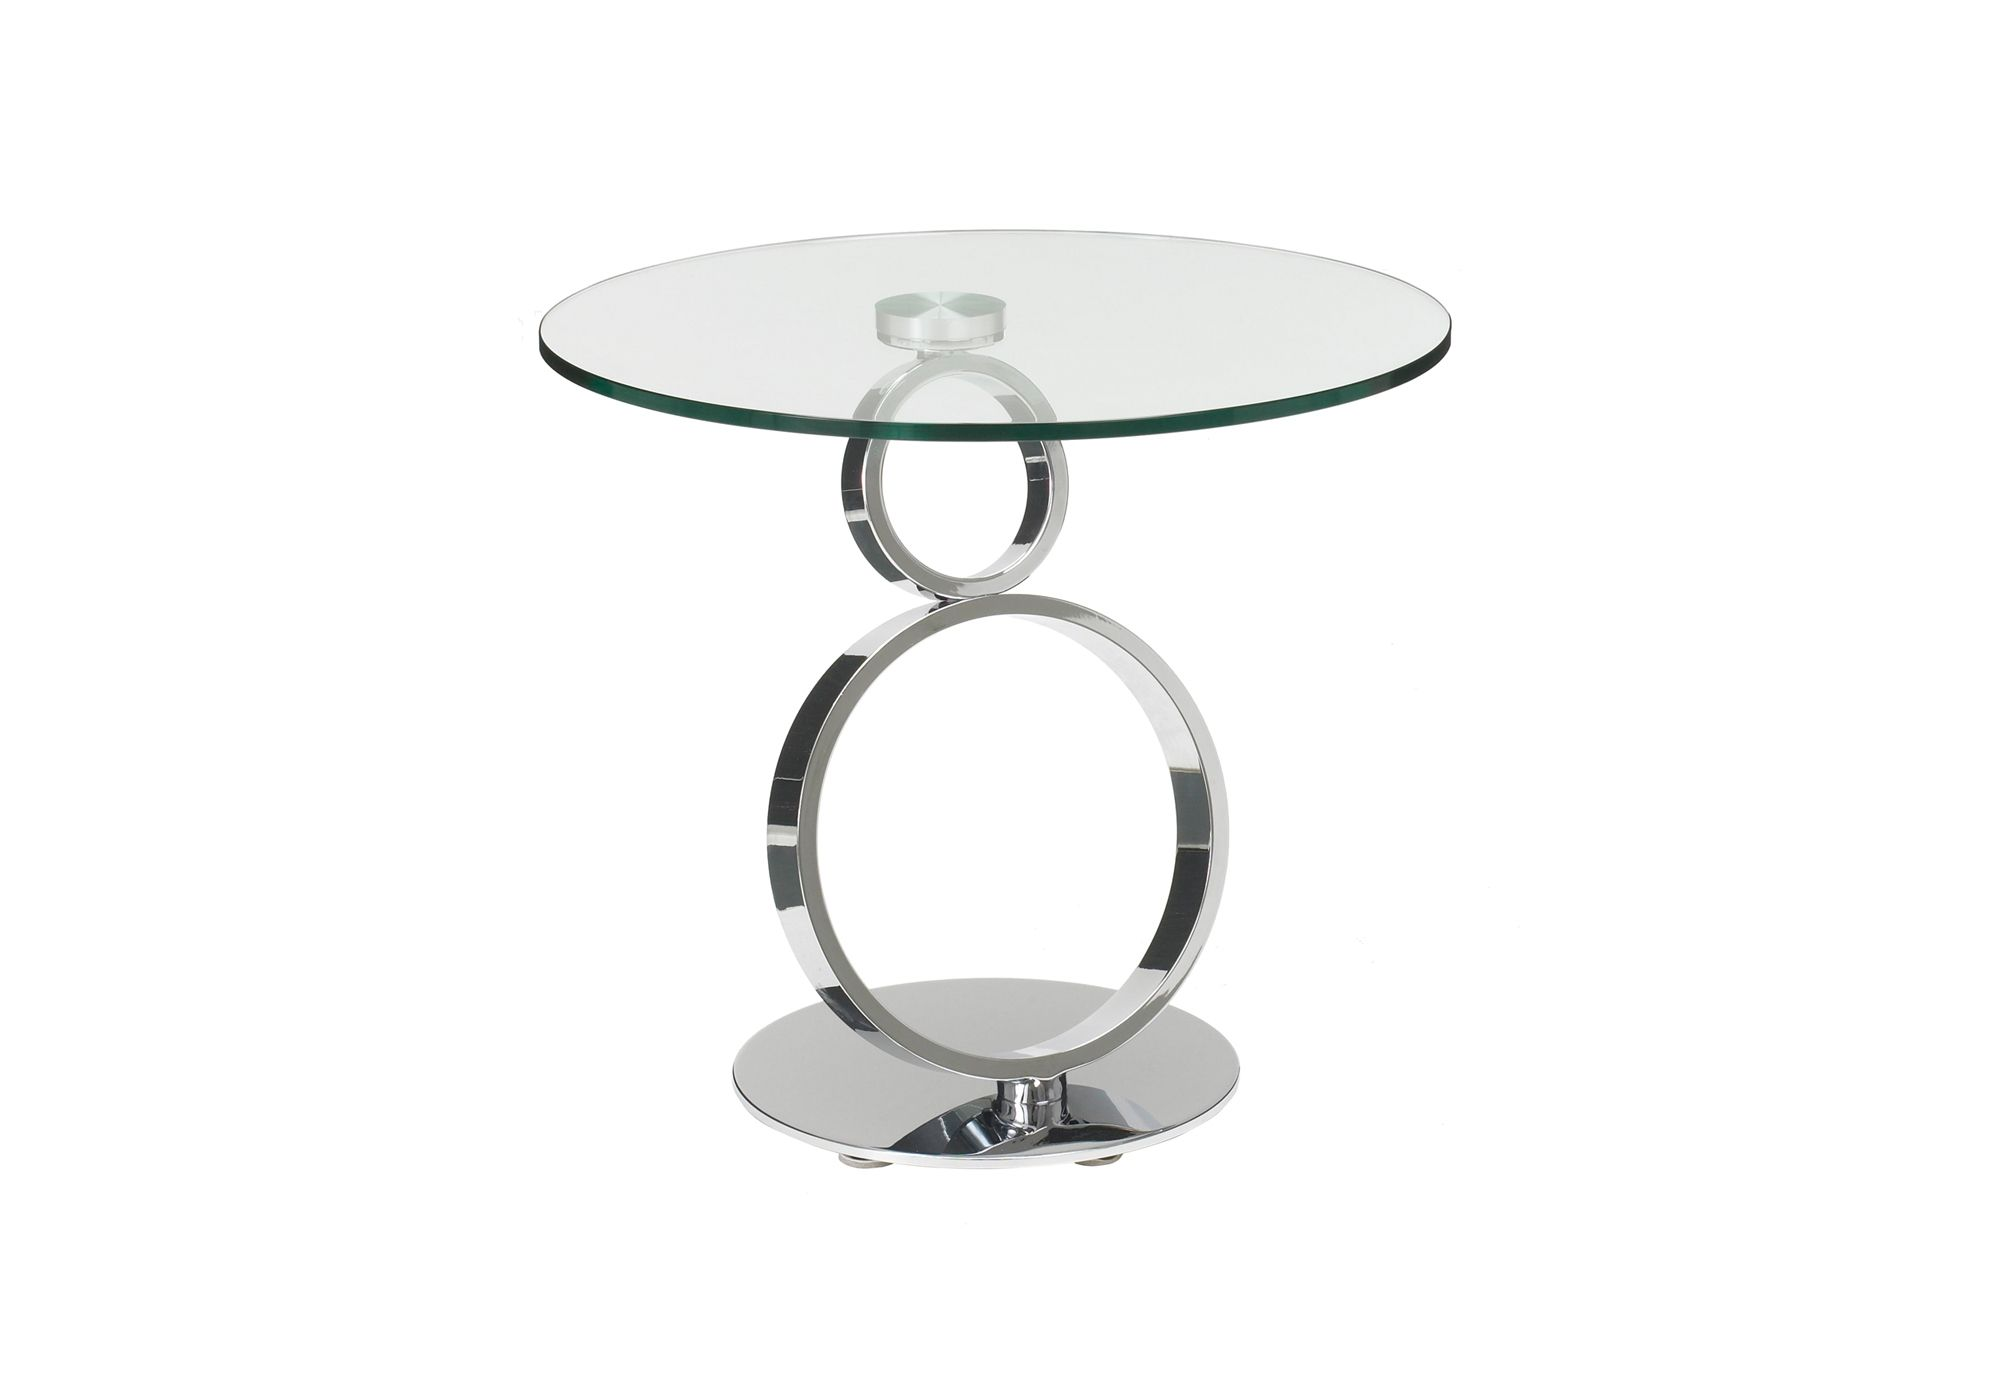 Lamp Table Rings Living Room Storage Cabinet Bookcases Furniture Village Furniture Village Ring Lamp Table Lamp